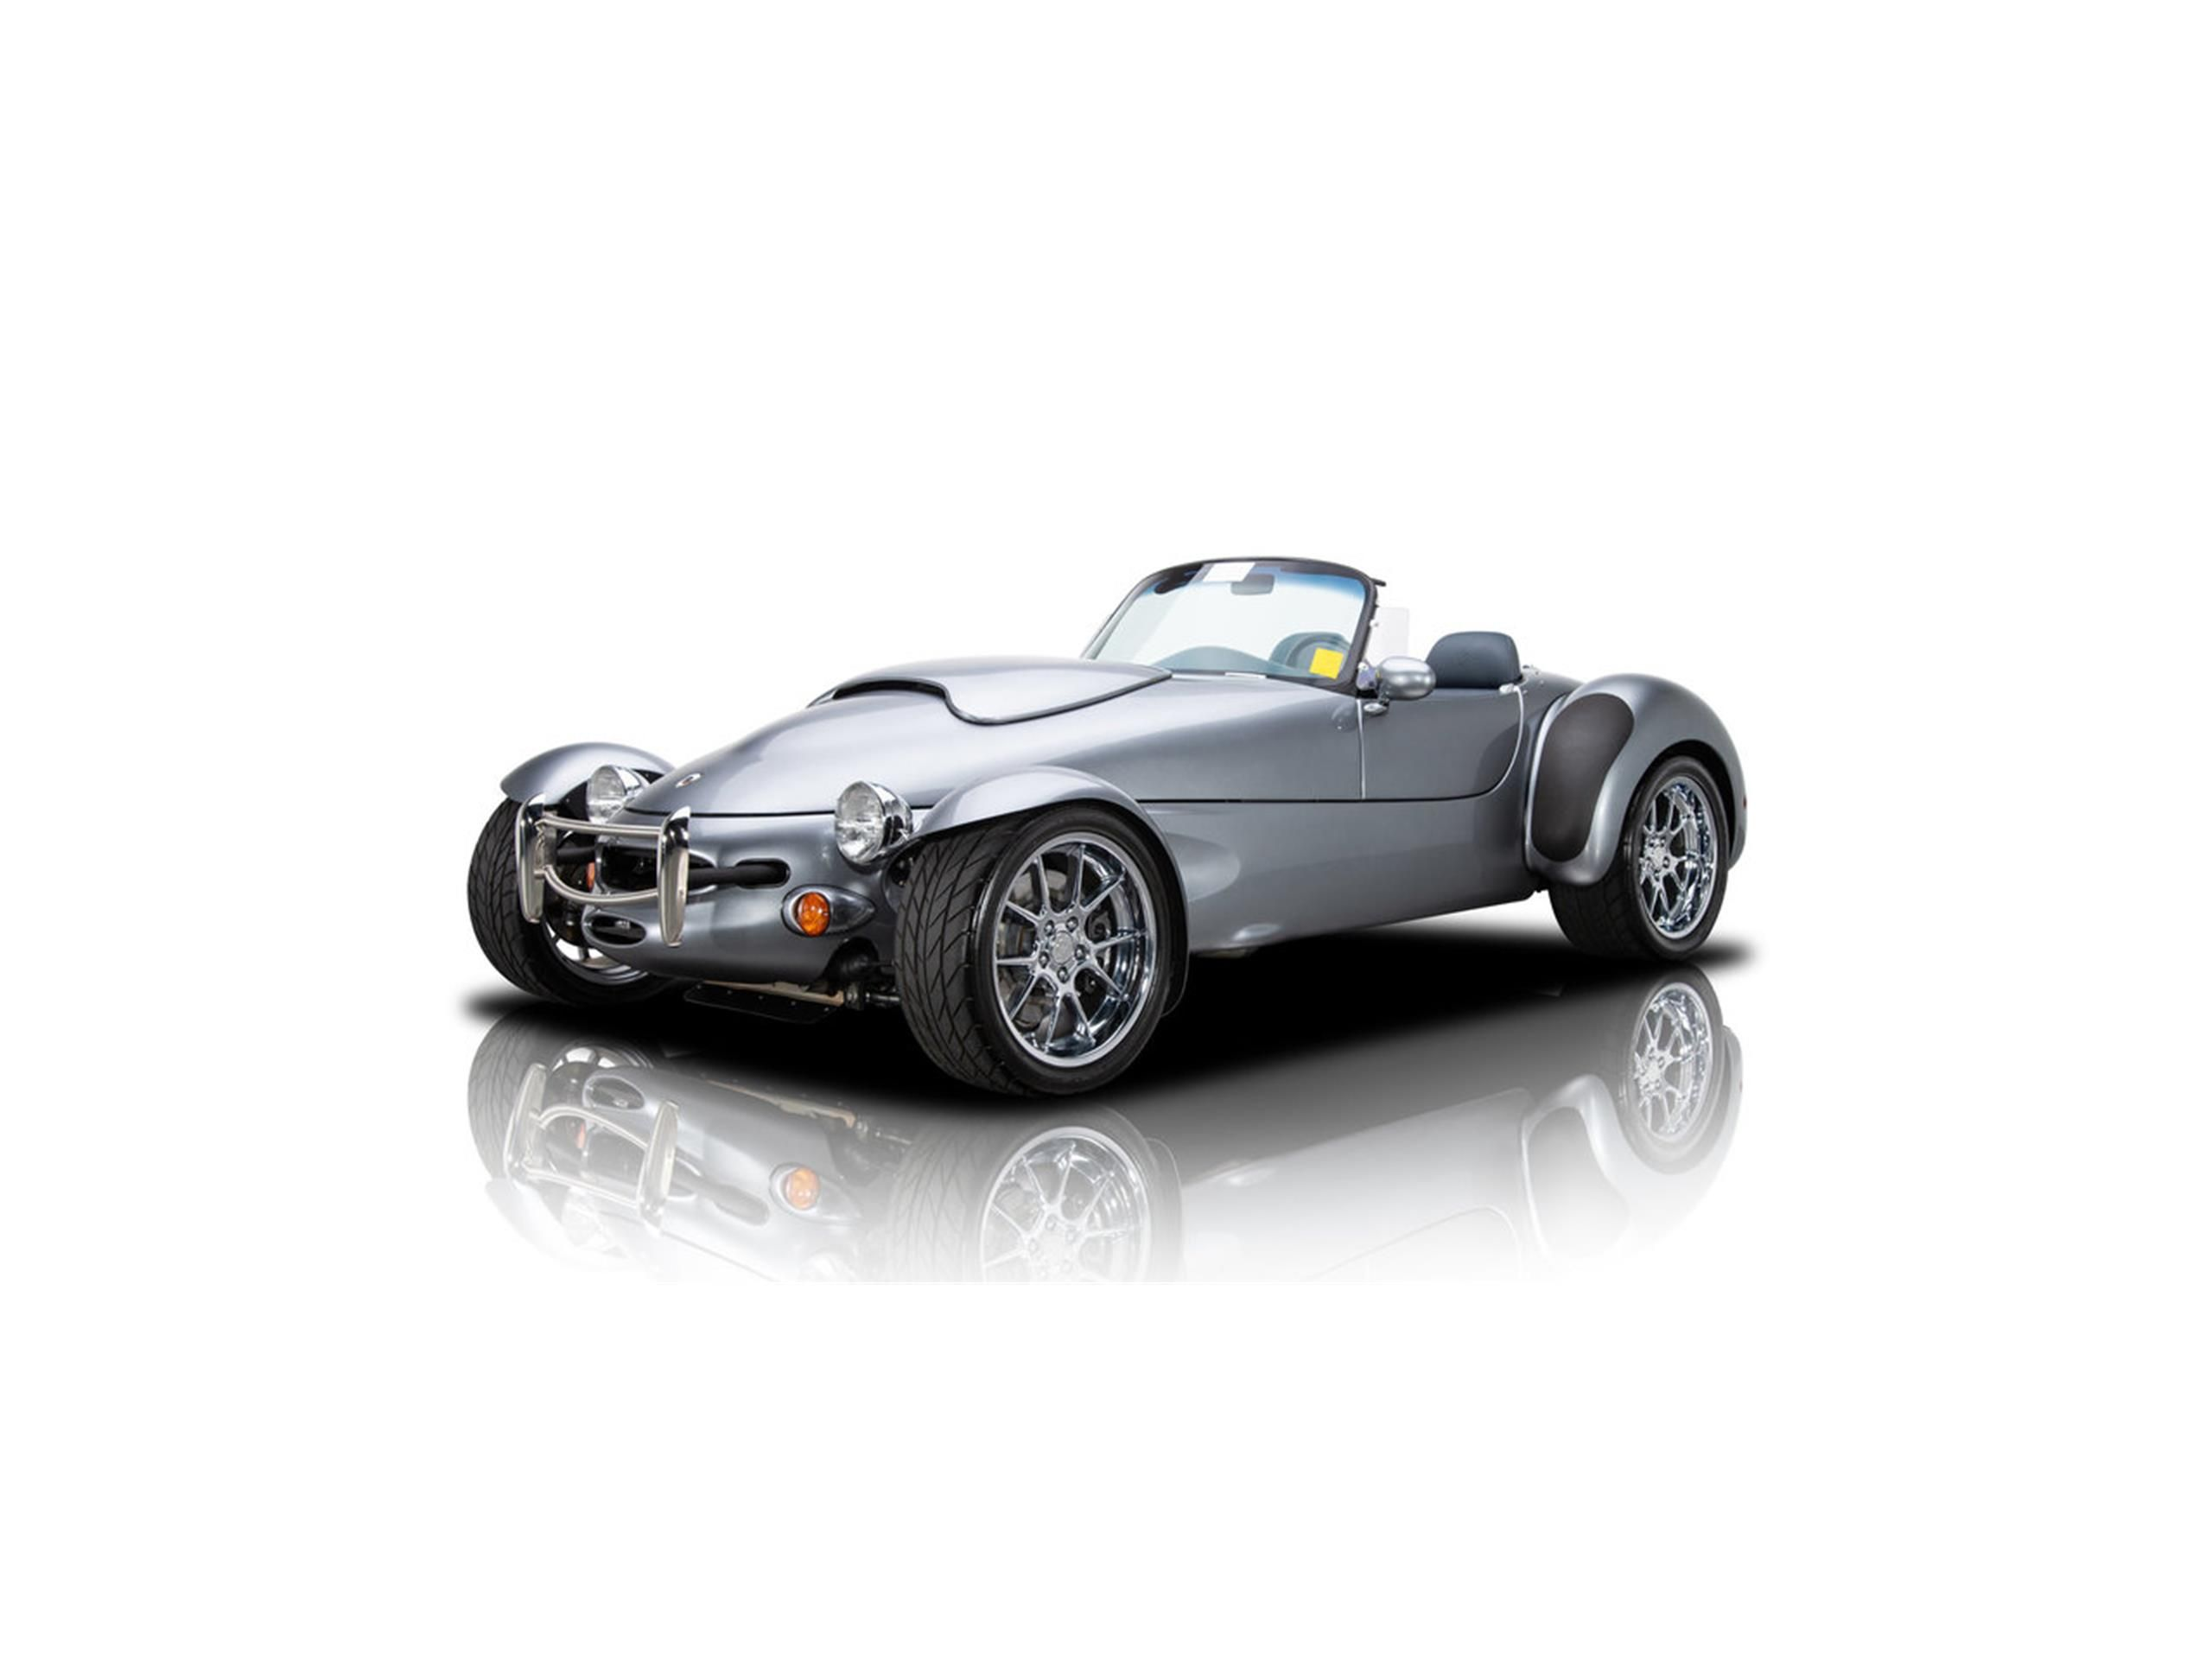 1999 Panoz AIV Roadster for sale Listing IDCC1111281